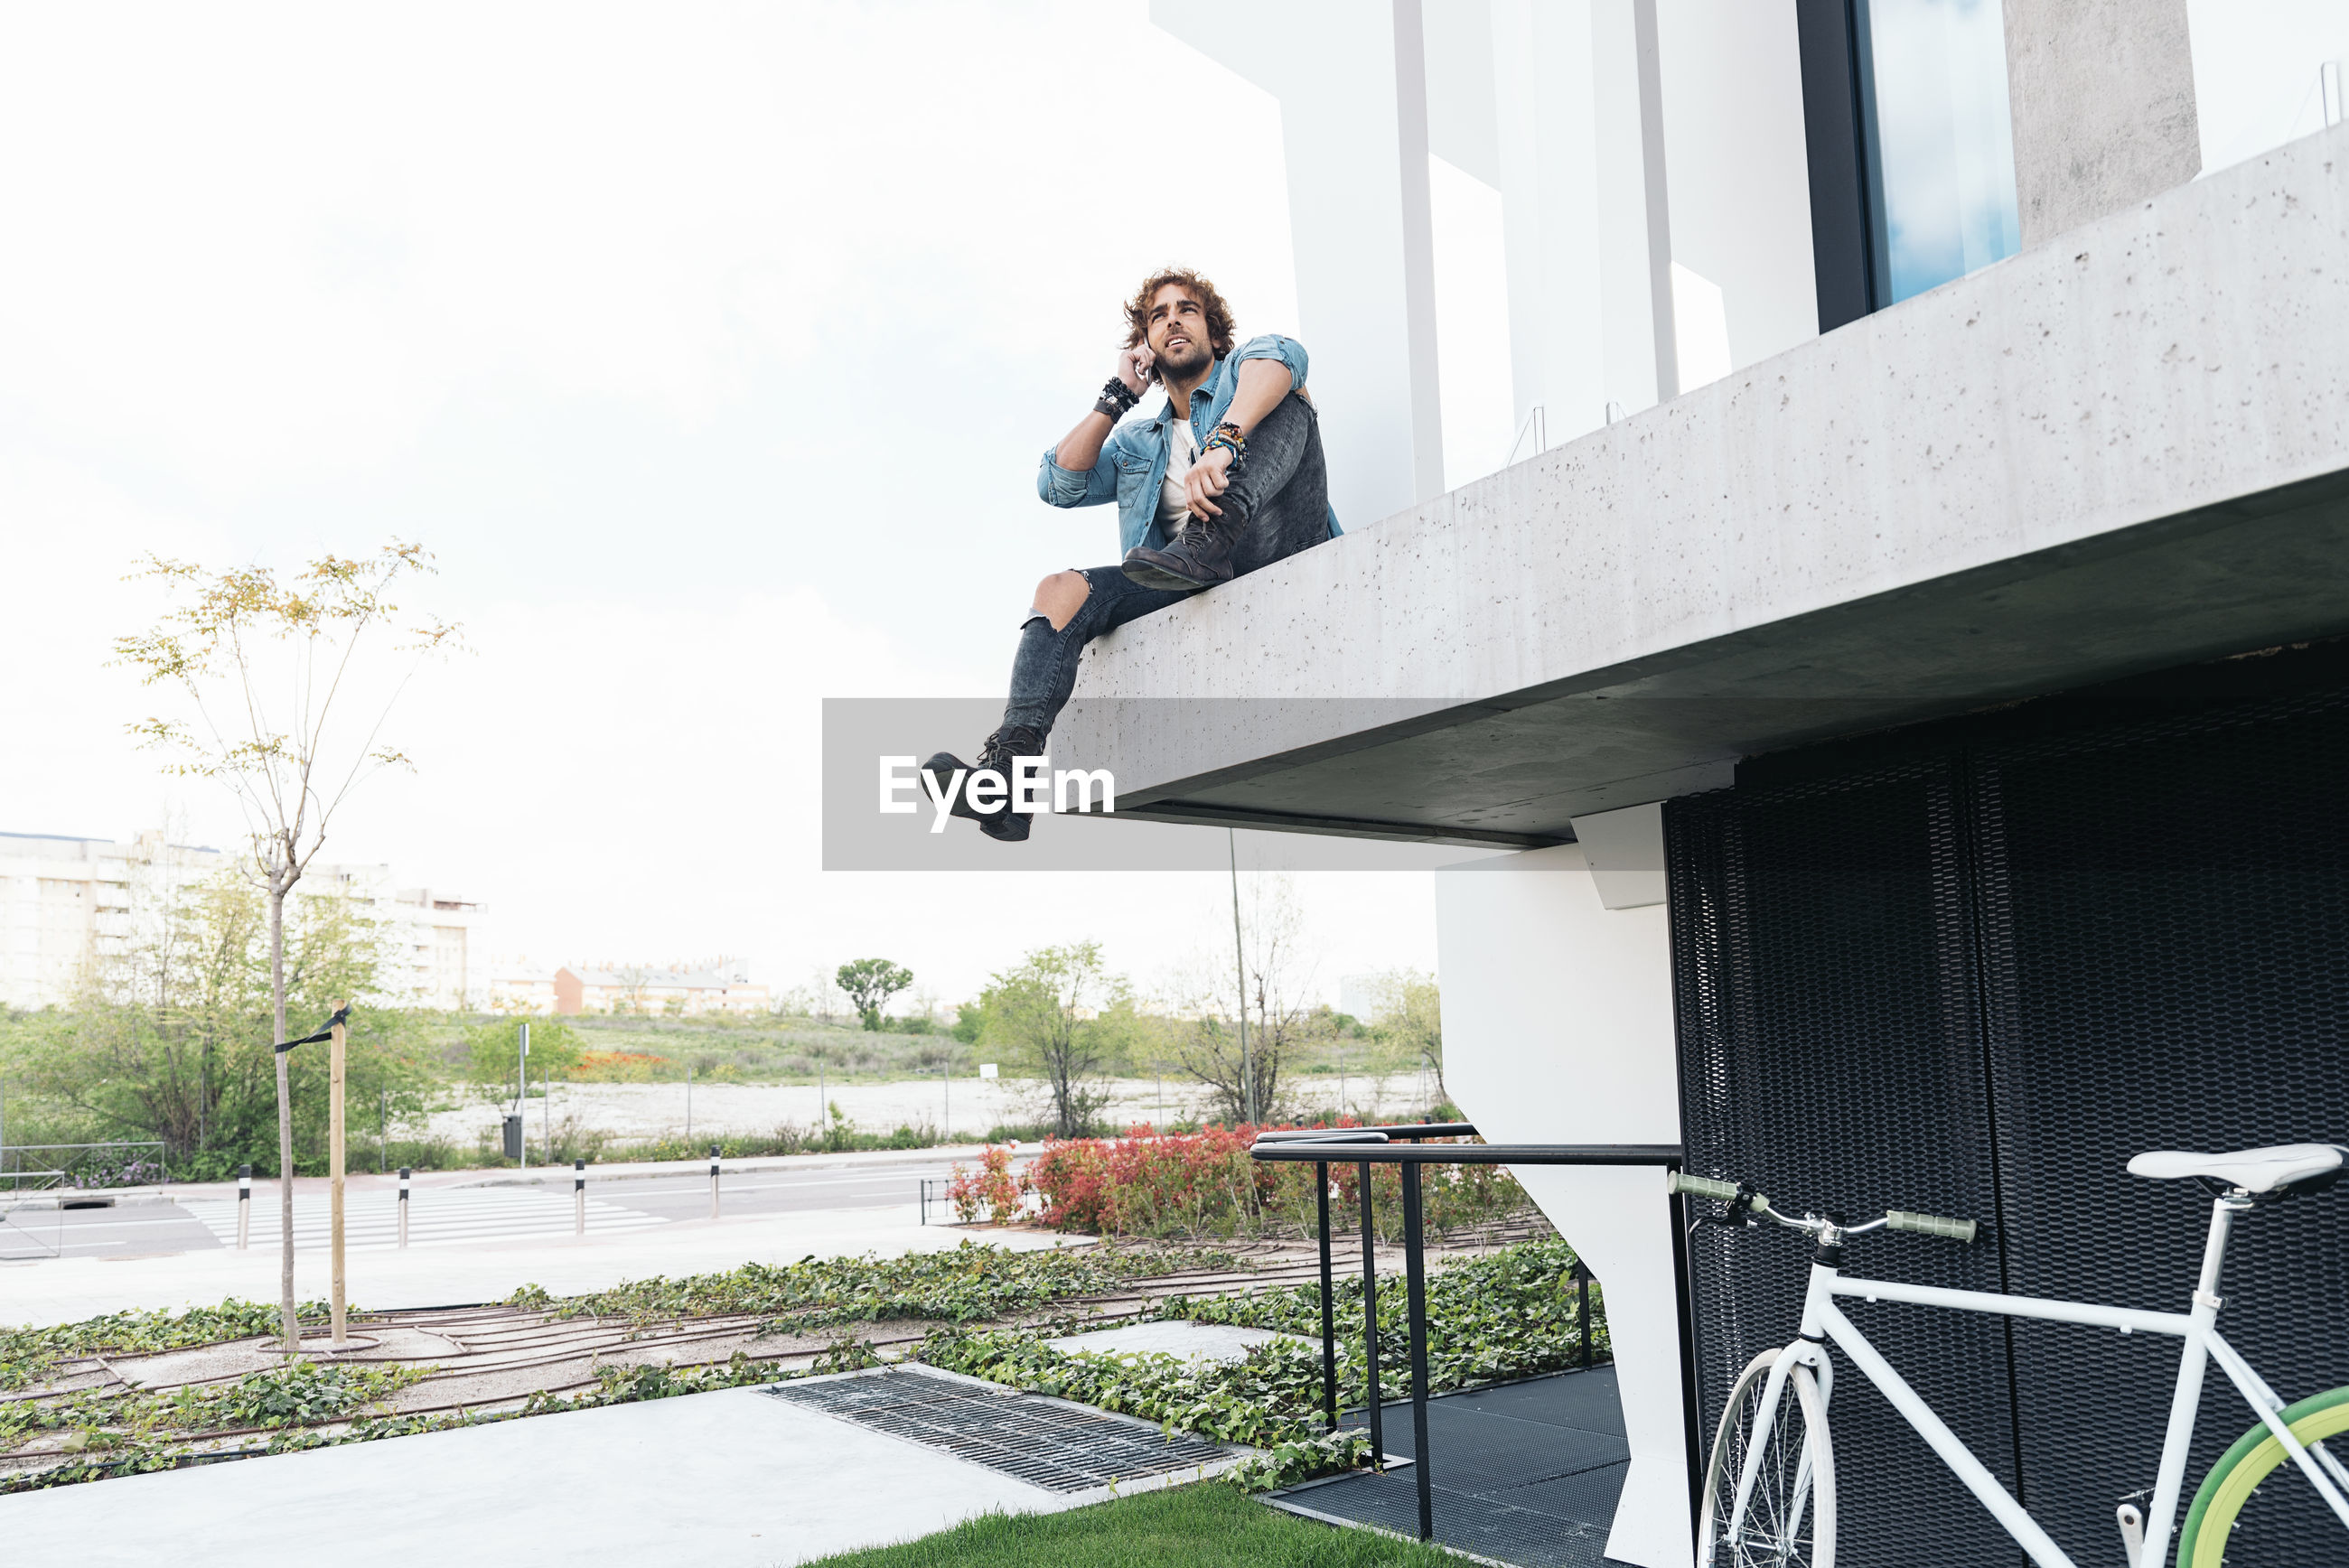 Low angle view of man using phone while sitting at building balcony